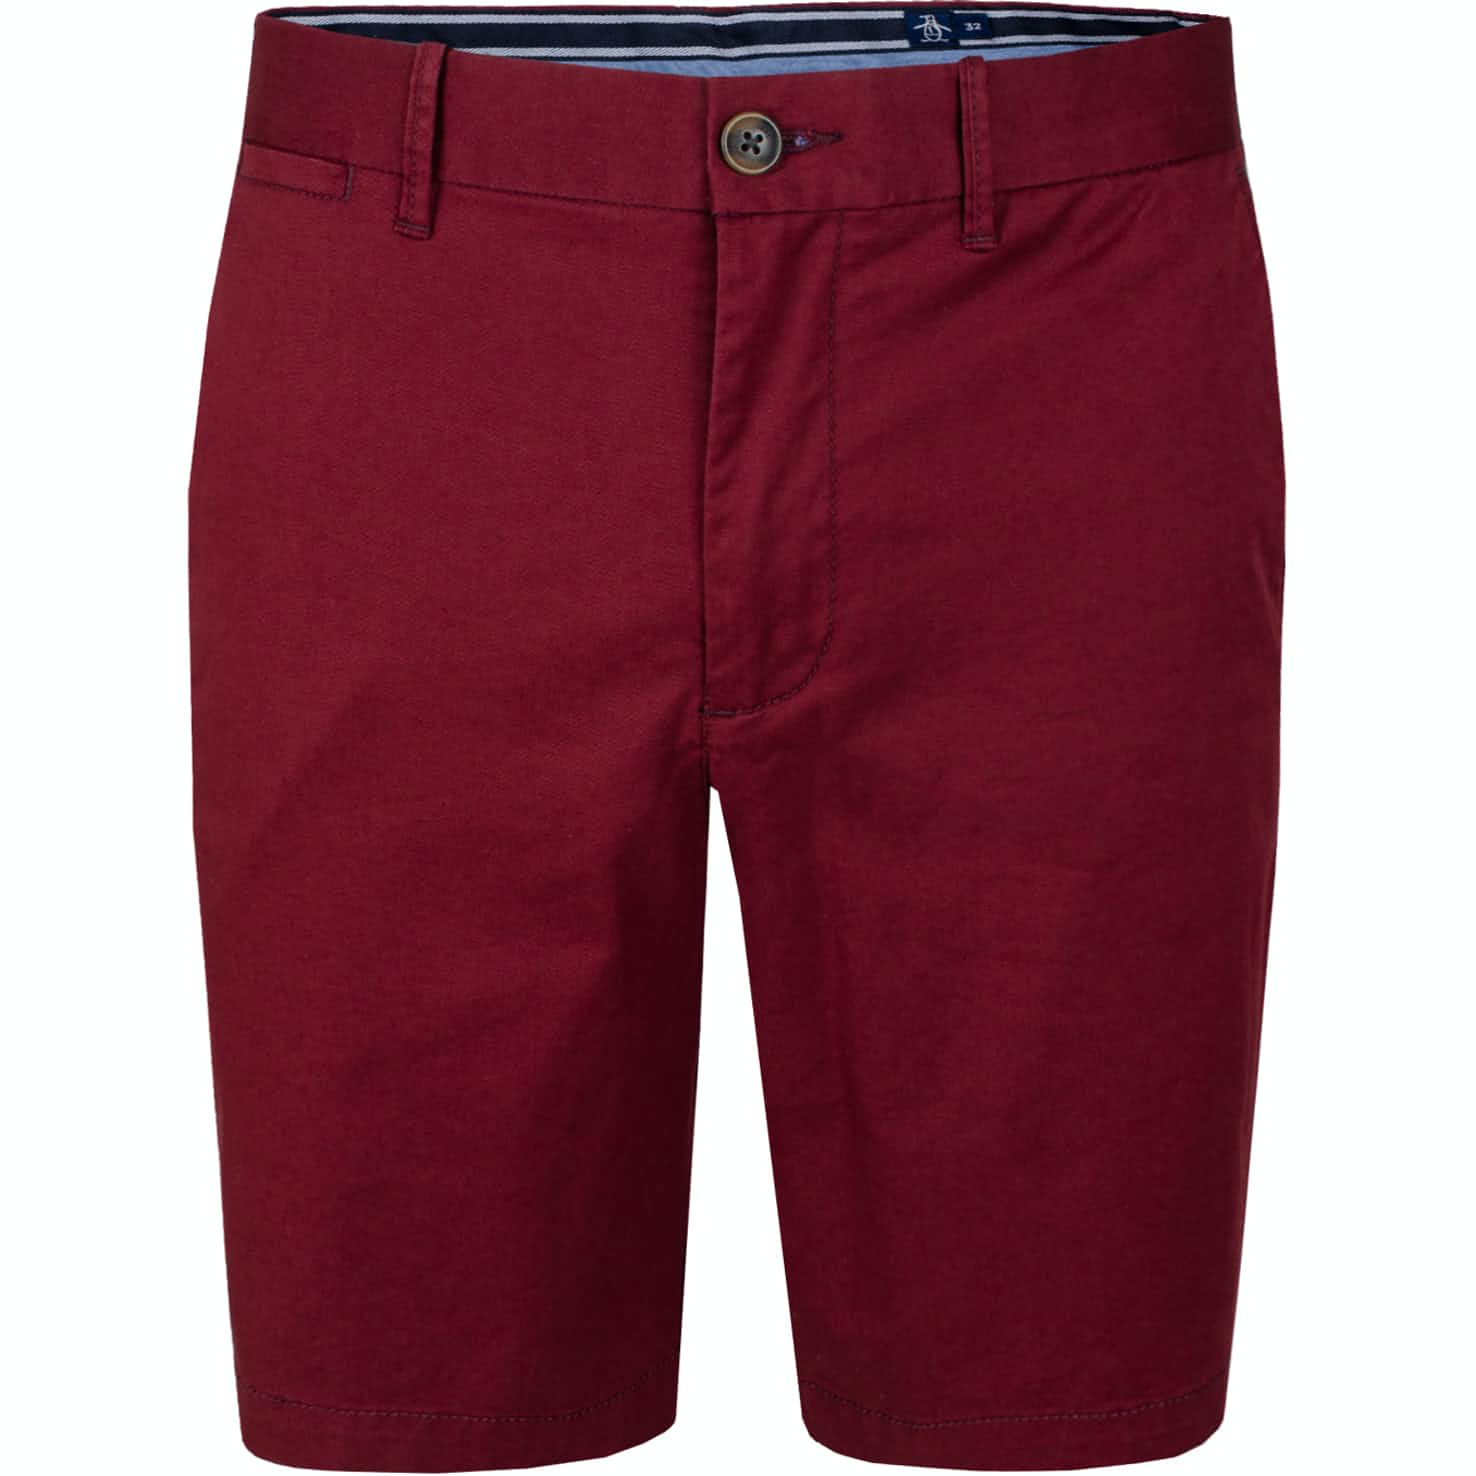 P55 Chino Shorts Tawny Port - AW19